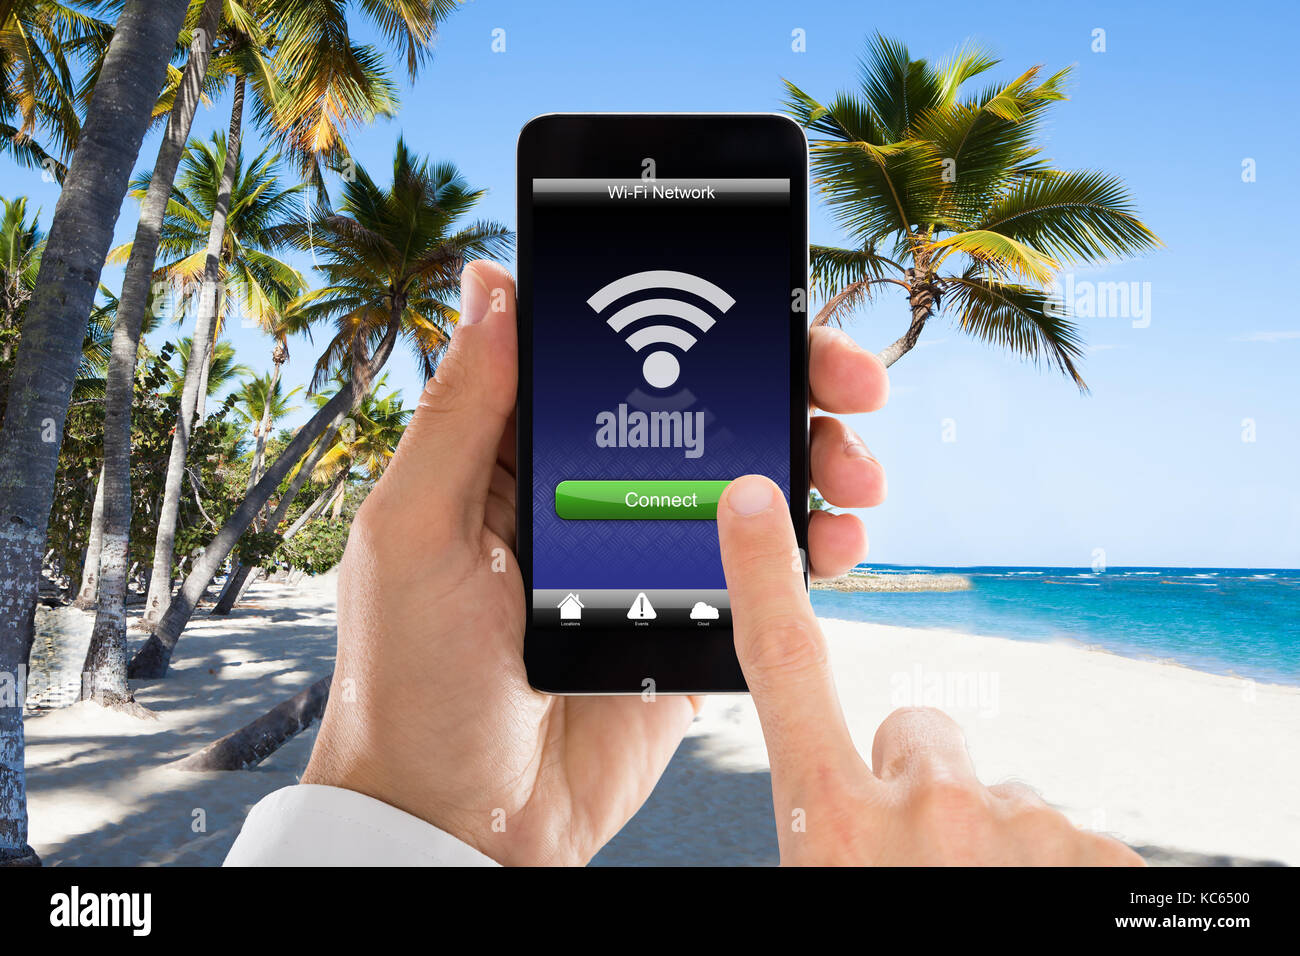 Close-up Of Man's Hand Connected WiFi On Mobile Phone At Beach. Internet Hotspot Coverage Concept - Stock Image